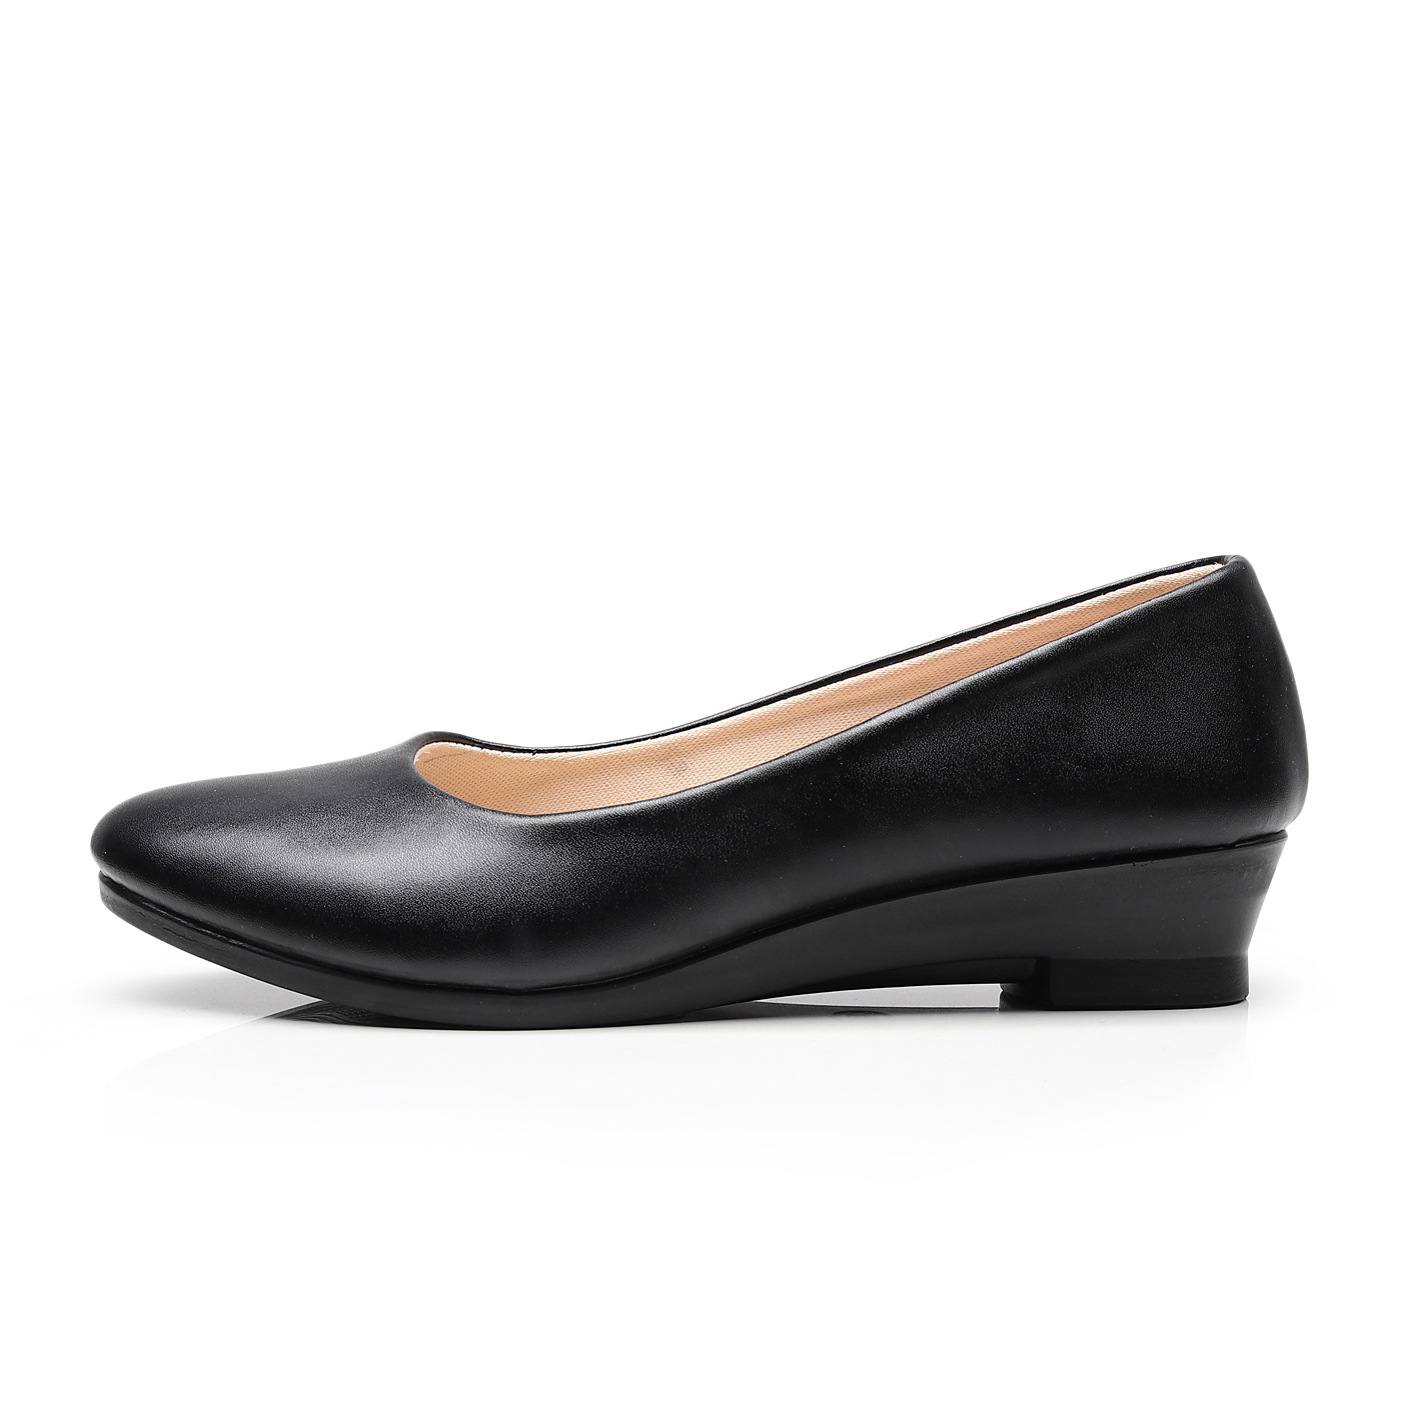 Women Ballet Flats Shoes Black Women Casual PU Leather Shoes For Office Work Boat Shoes Cloth Sweet Loafers Womens Classics Shoe in Women 39 s Flats from Shoes